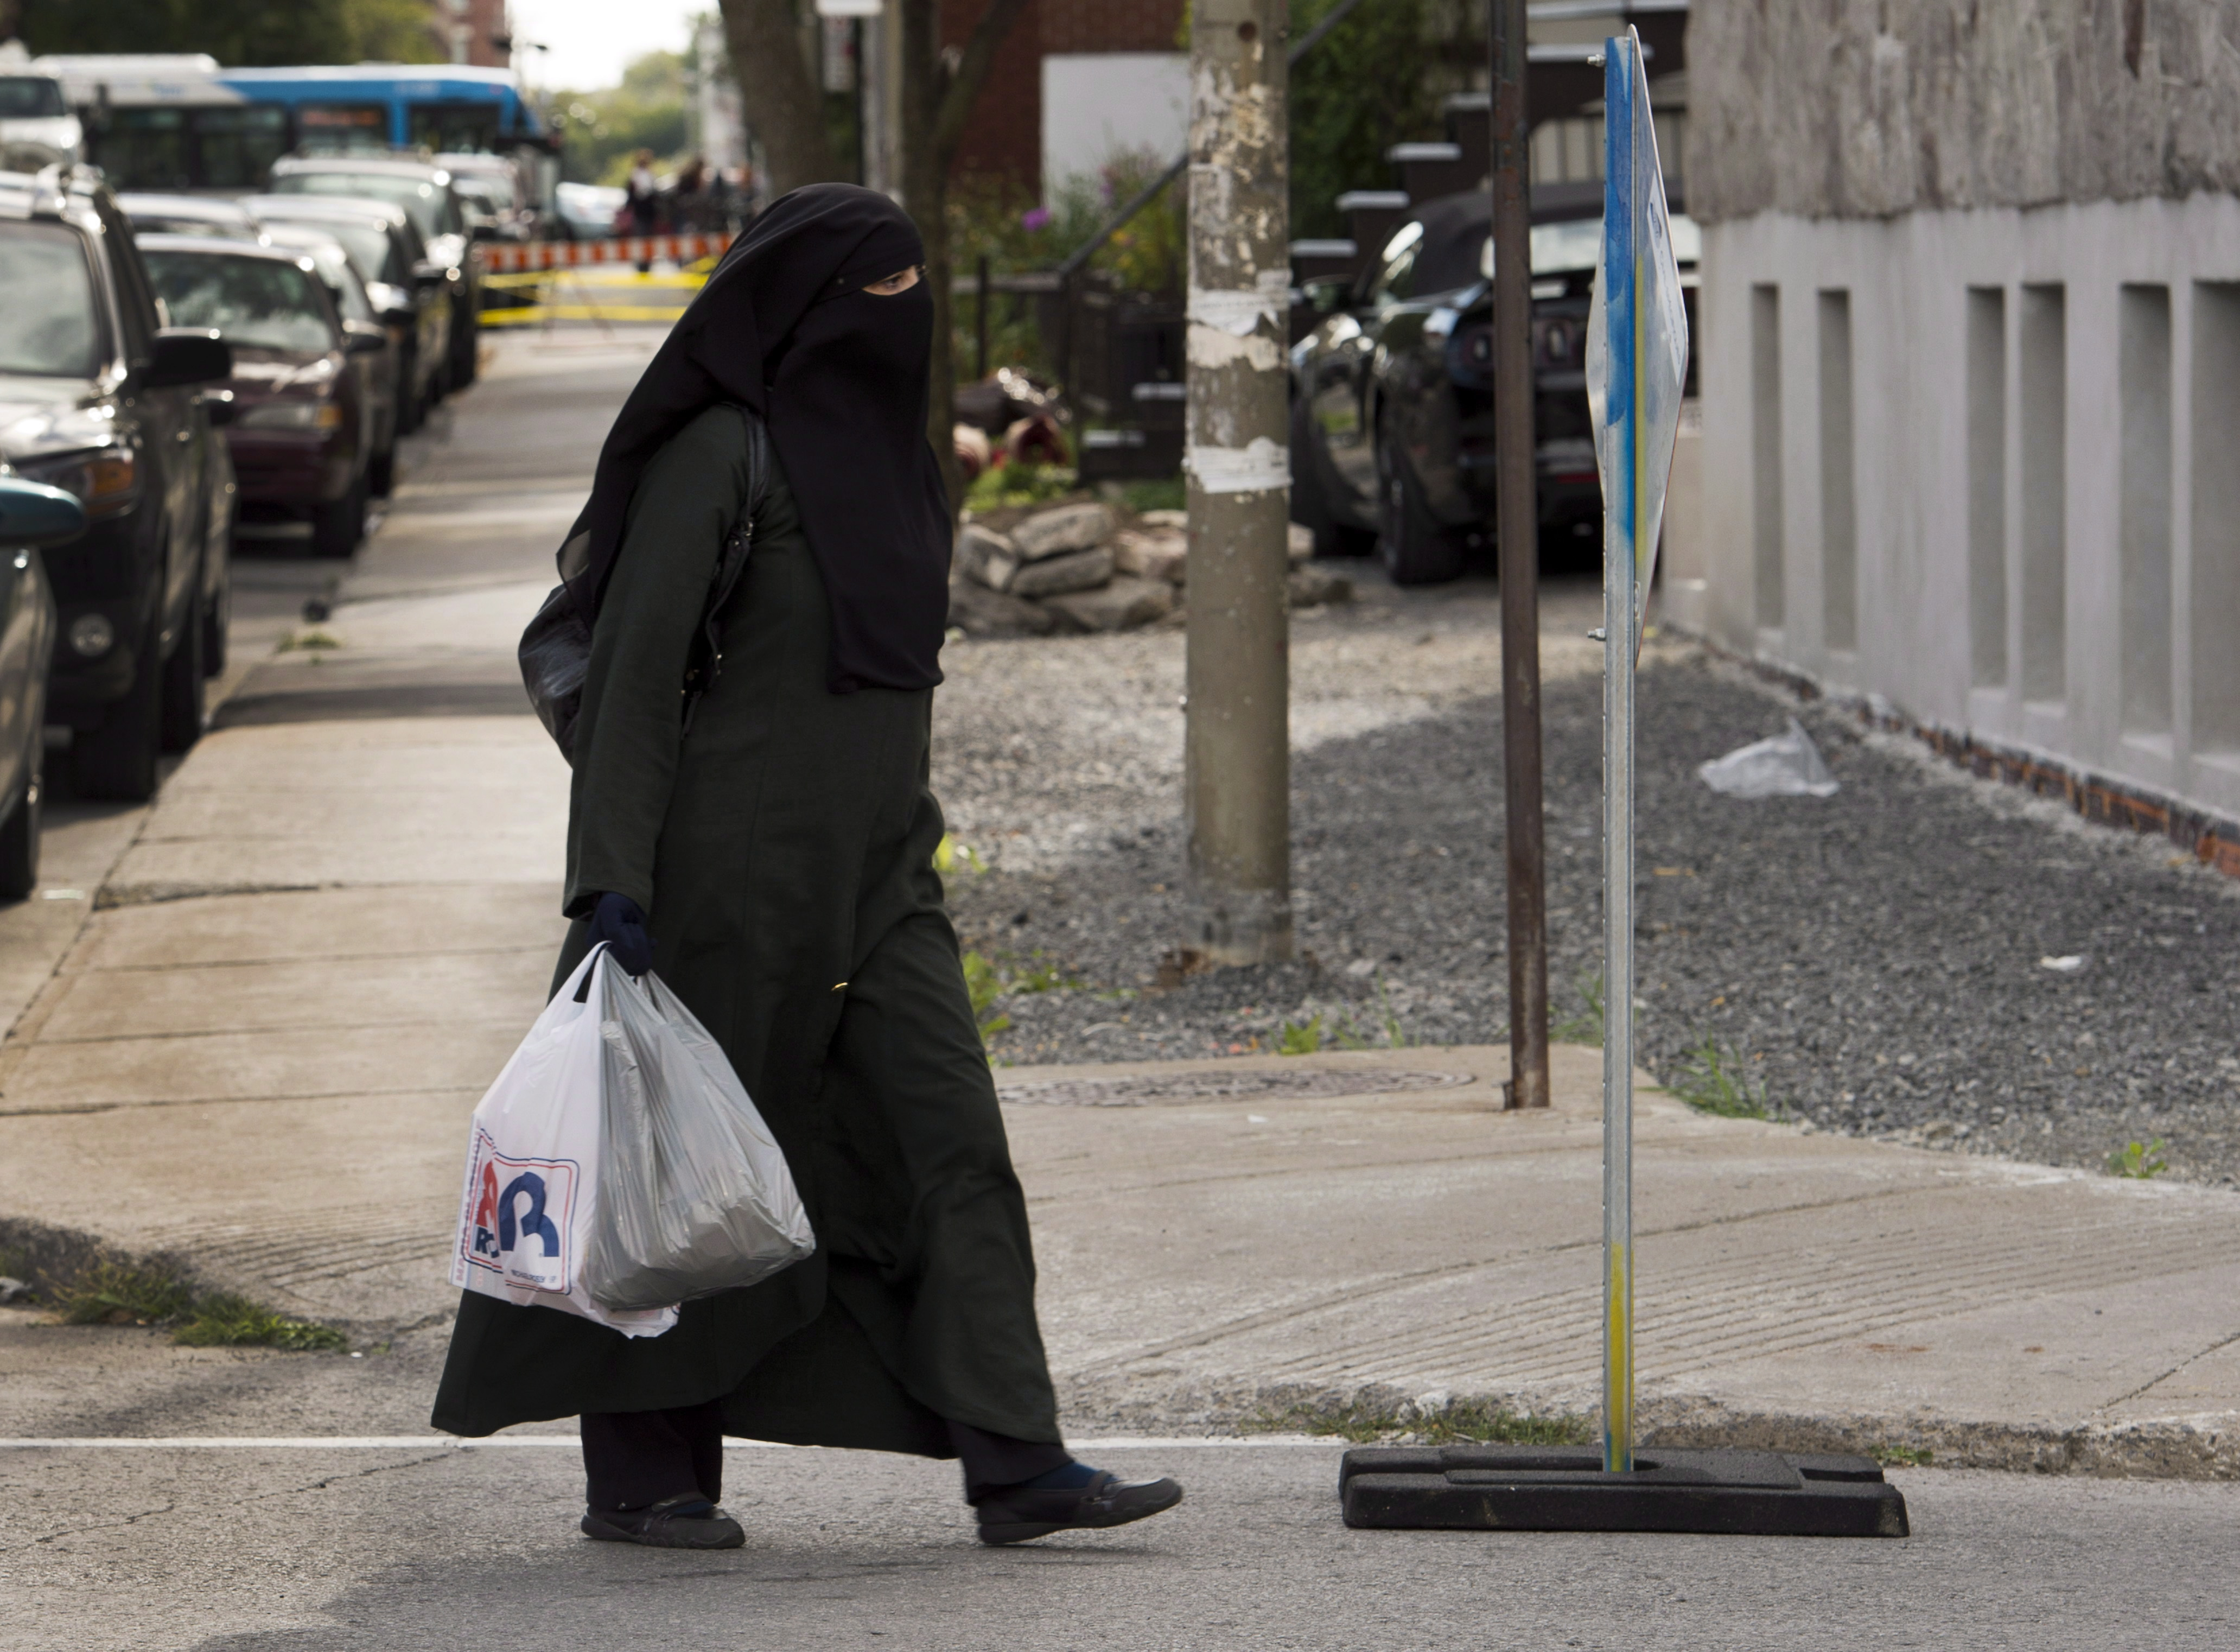 A woman wears a niqab as she walks on Sept. 9, 2013 in